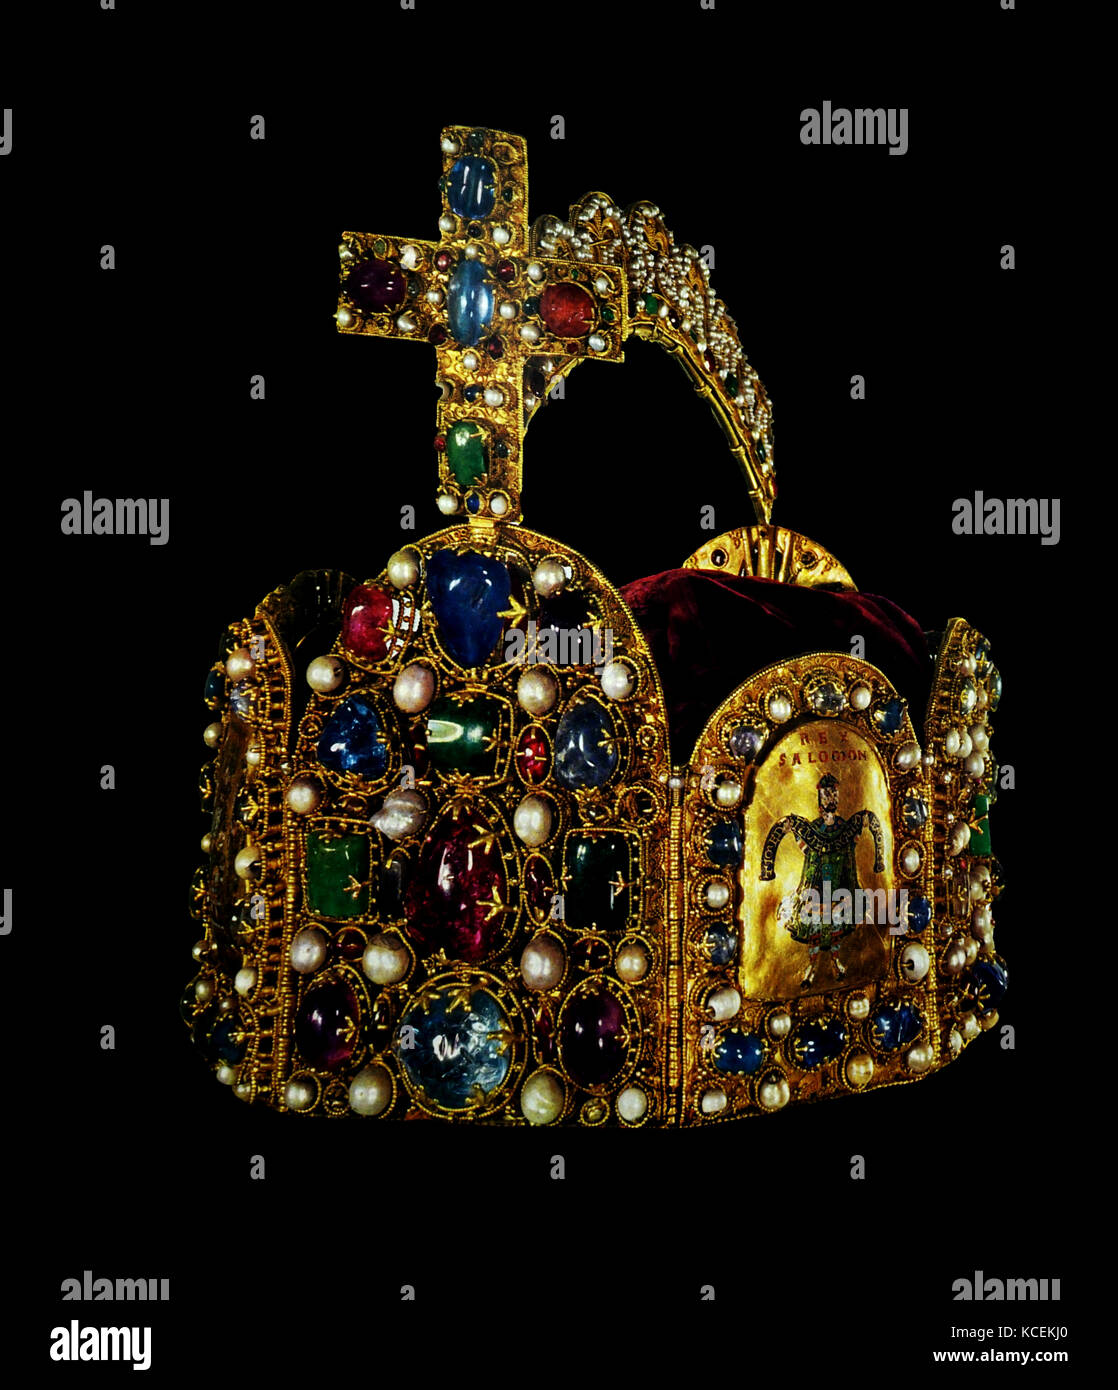 Imperial Crown from the regalia of the Holy Roman Empire. Dated 11th Century - Stock Image